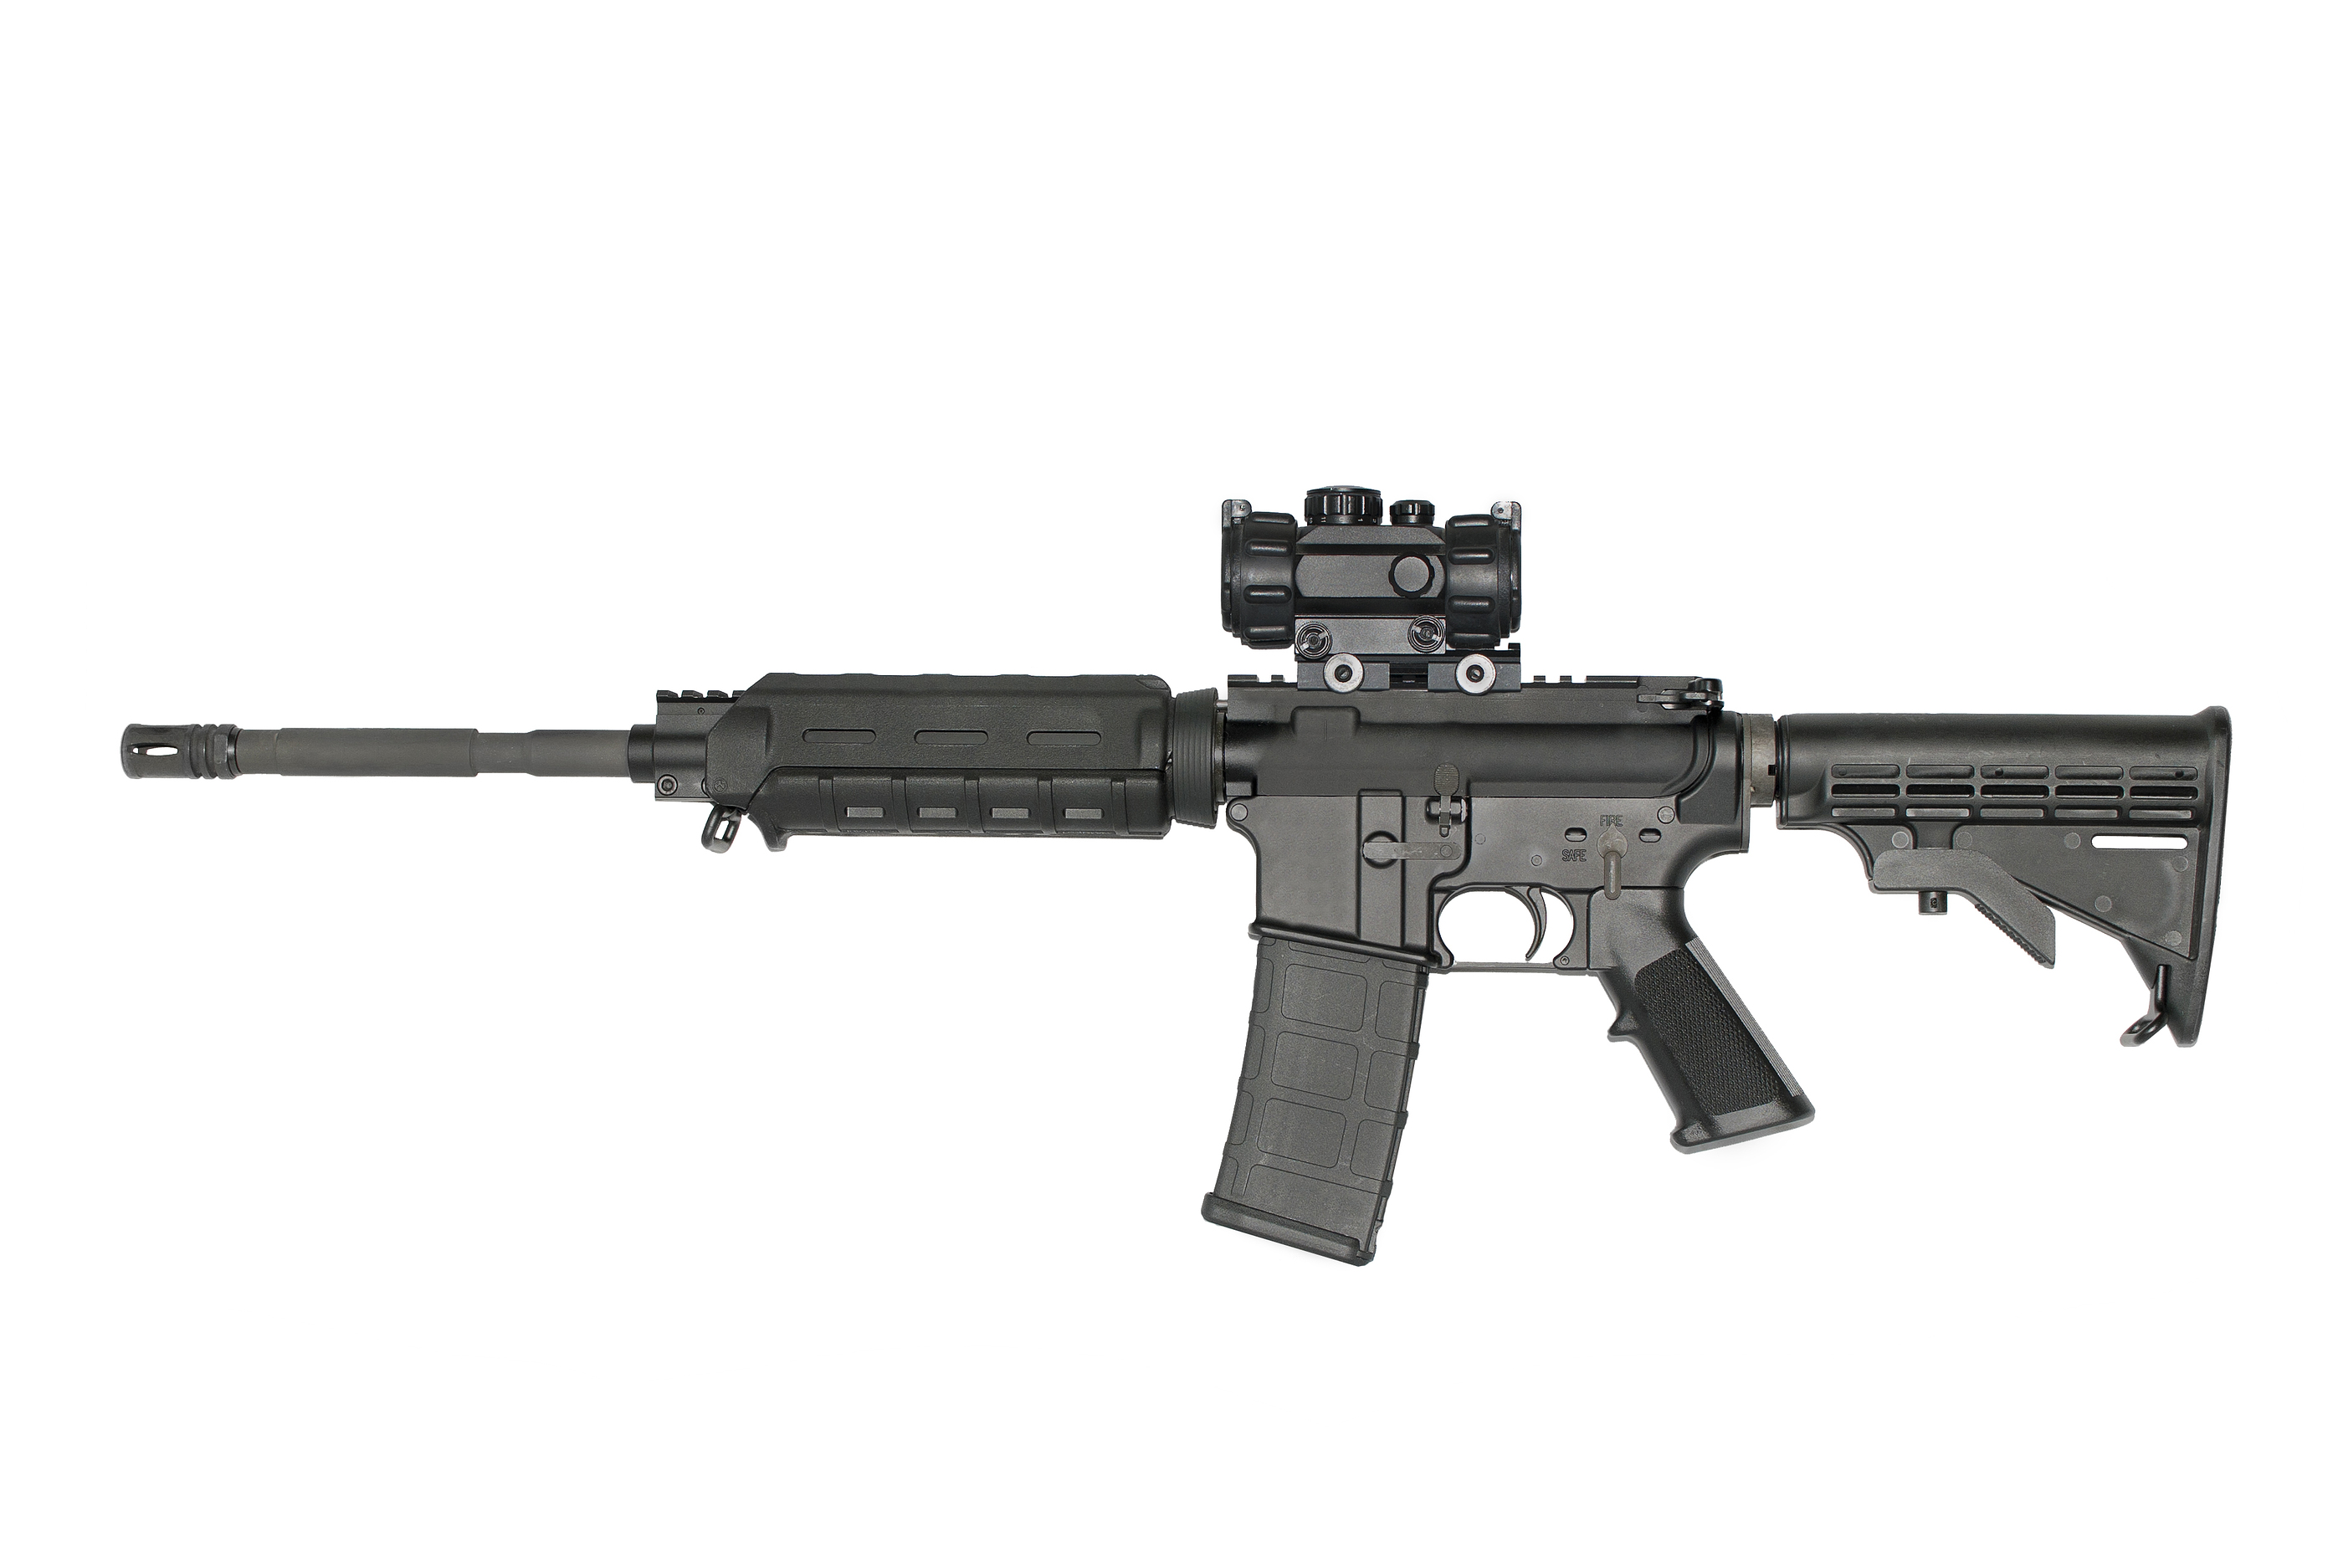 Ar-15 On White With Optic.jpg